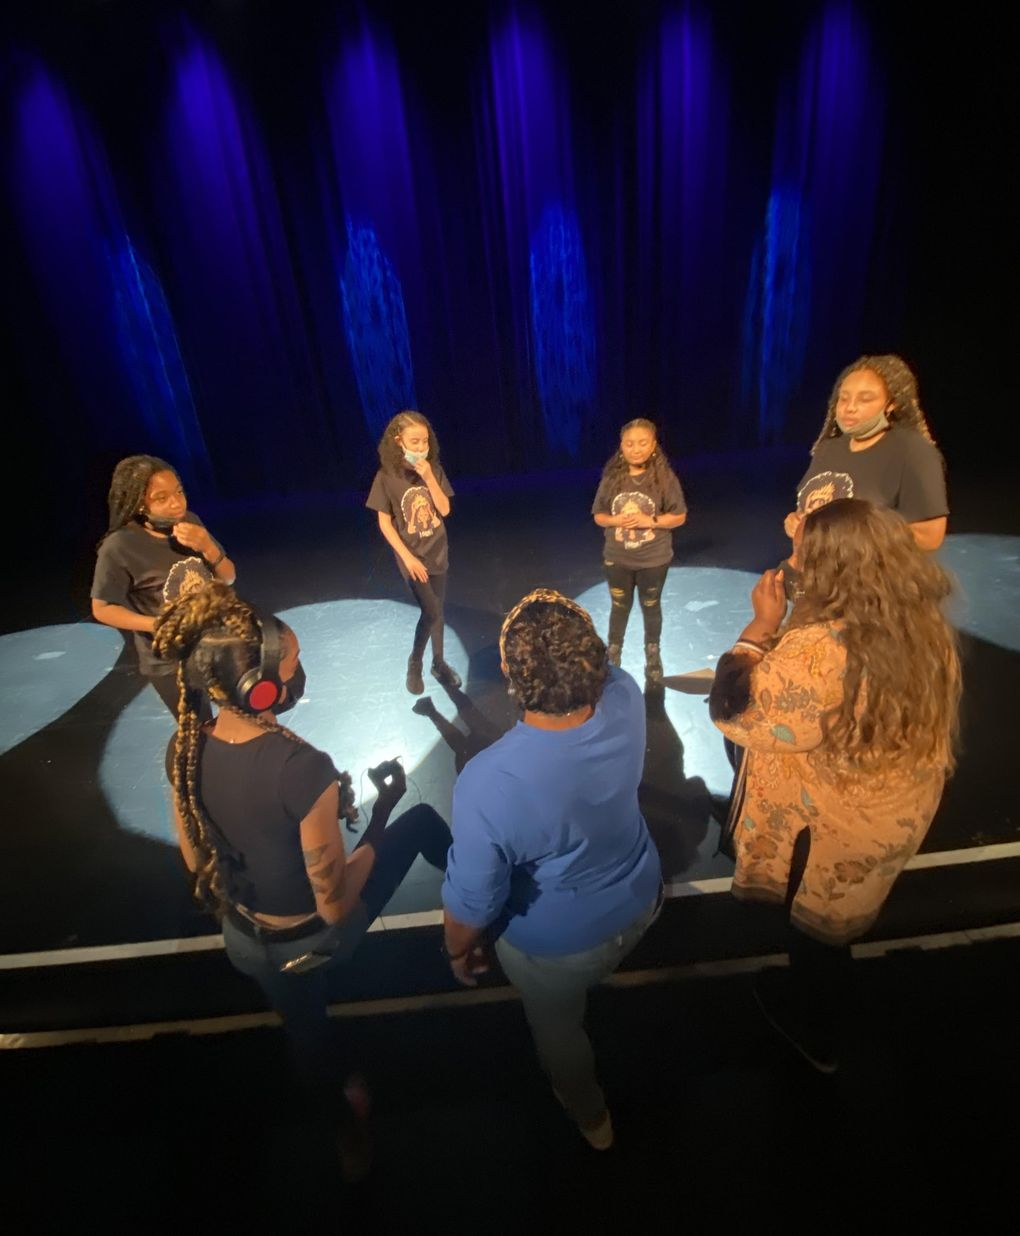 ELEVATE youth performers — from left, Maya Michelle Russell, Deasia Gordon, Estrella Gonzales-Sanders and Nyshae Griffin — discuss their spoken-word performances at the Paramount Theatre. (Courtesy of Seattle Theatre Group)